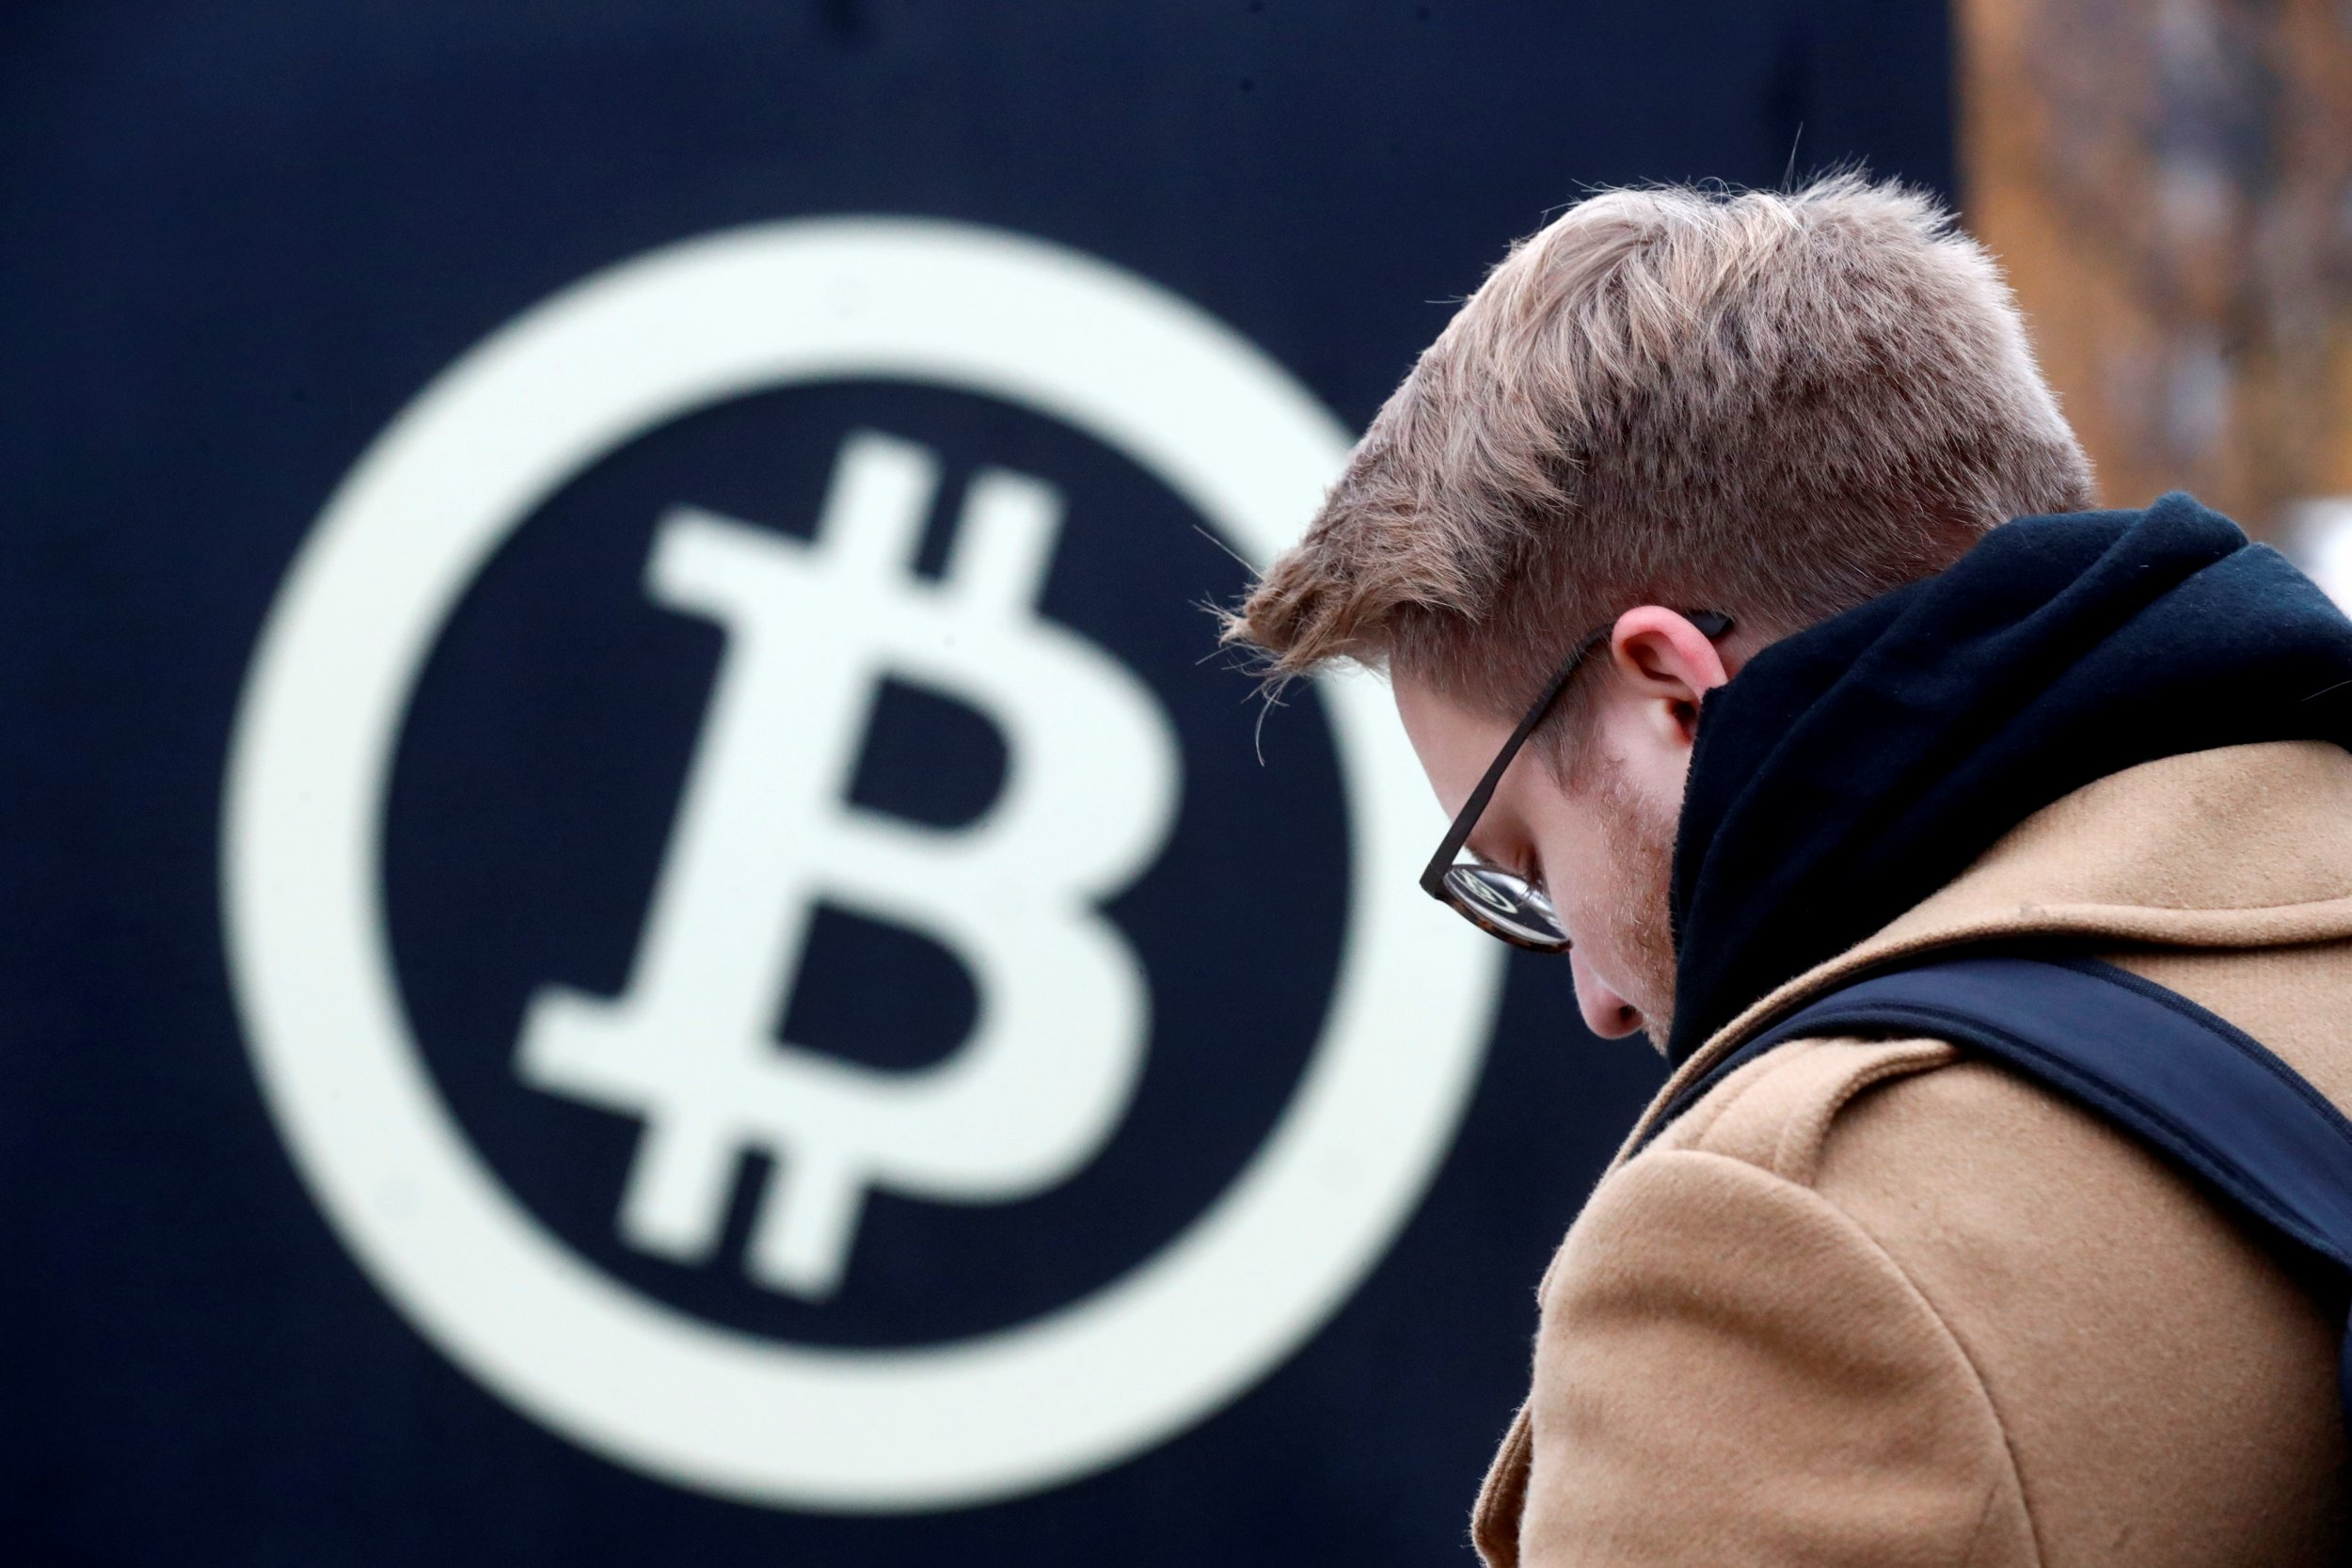 Bitcoin Loses 10% of Value in 24 Hours, Crypto Down 14% Worldwide